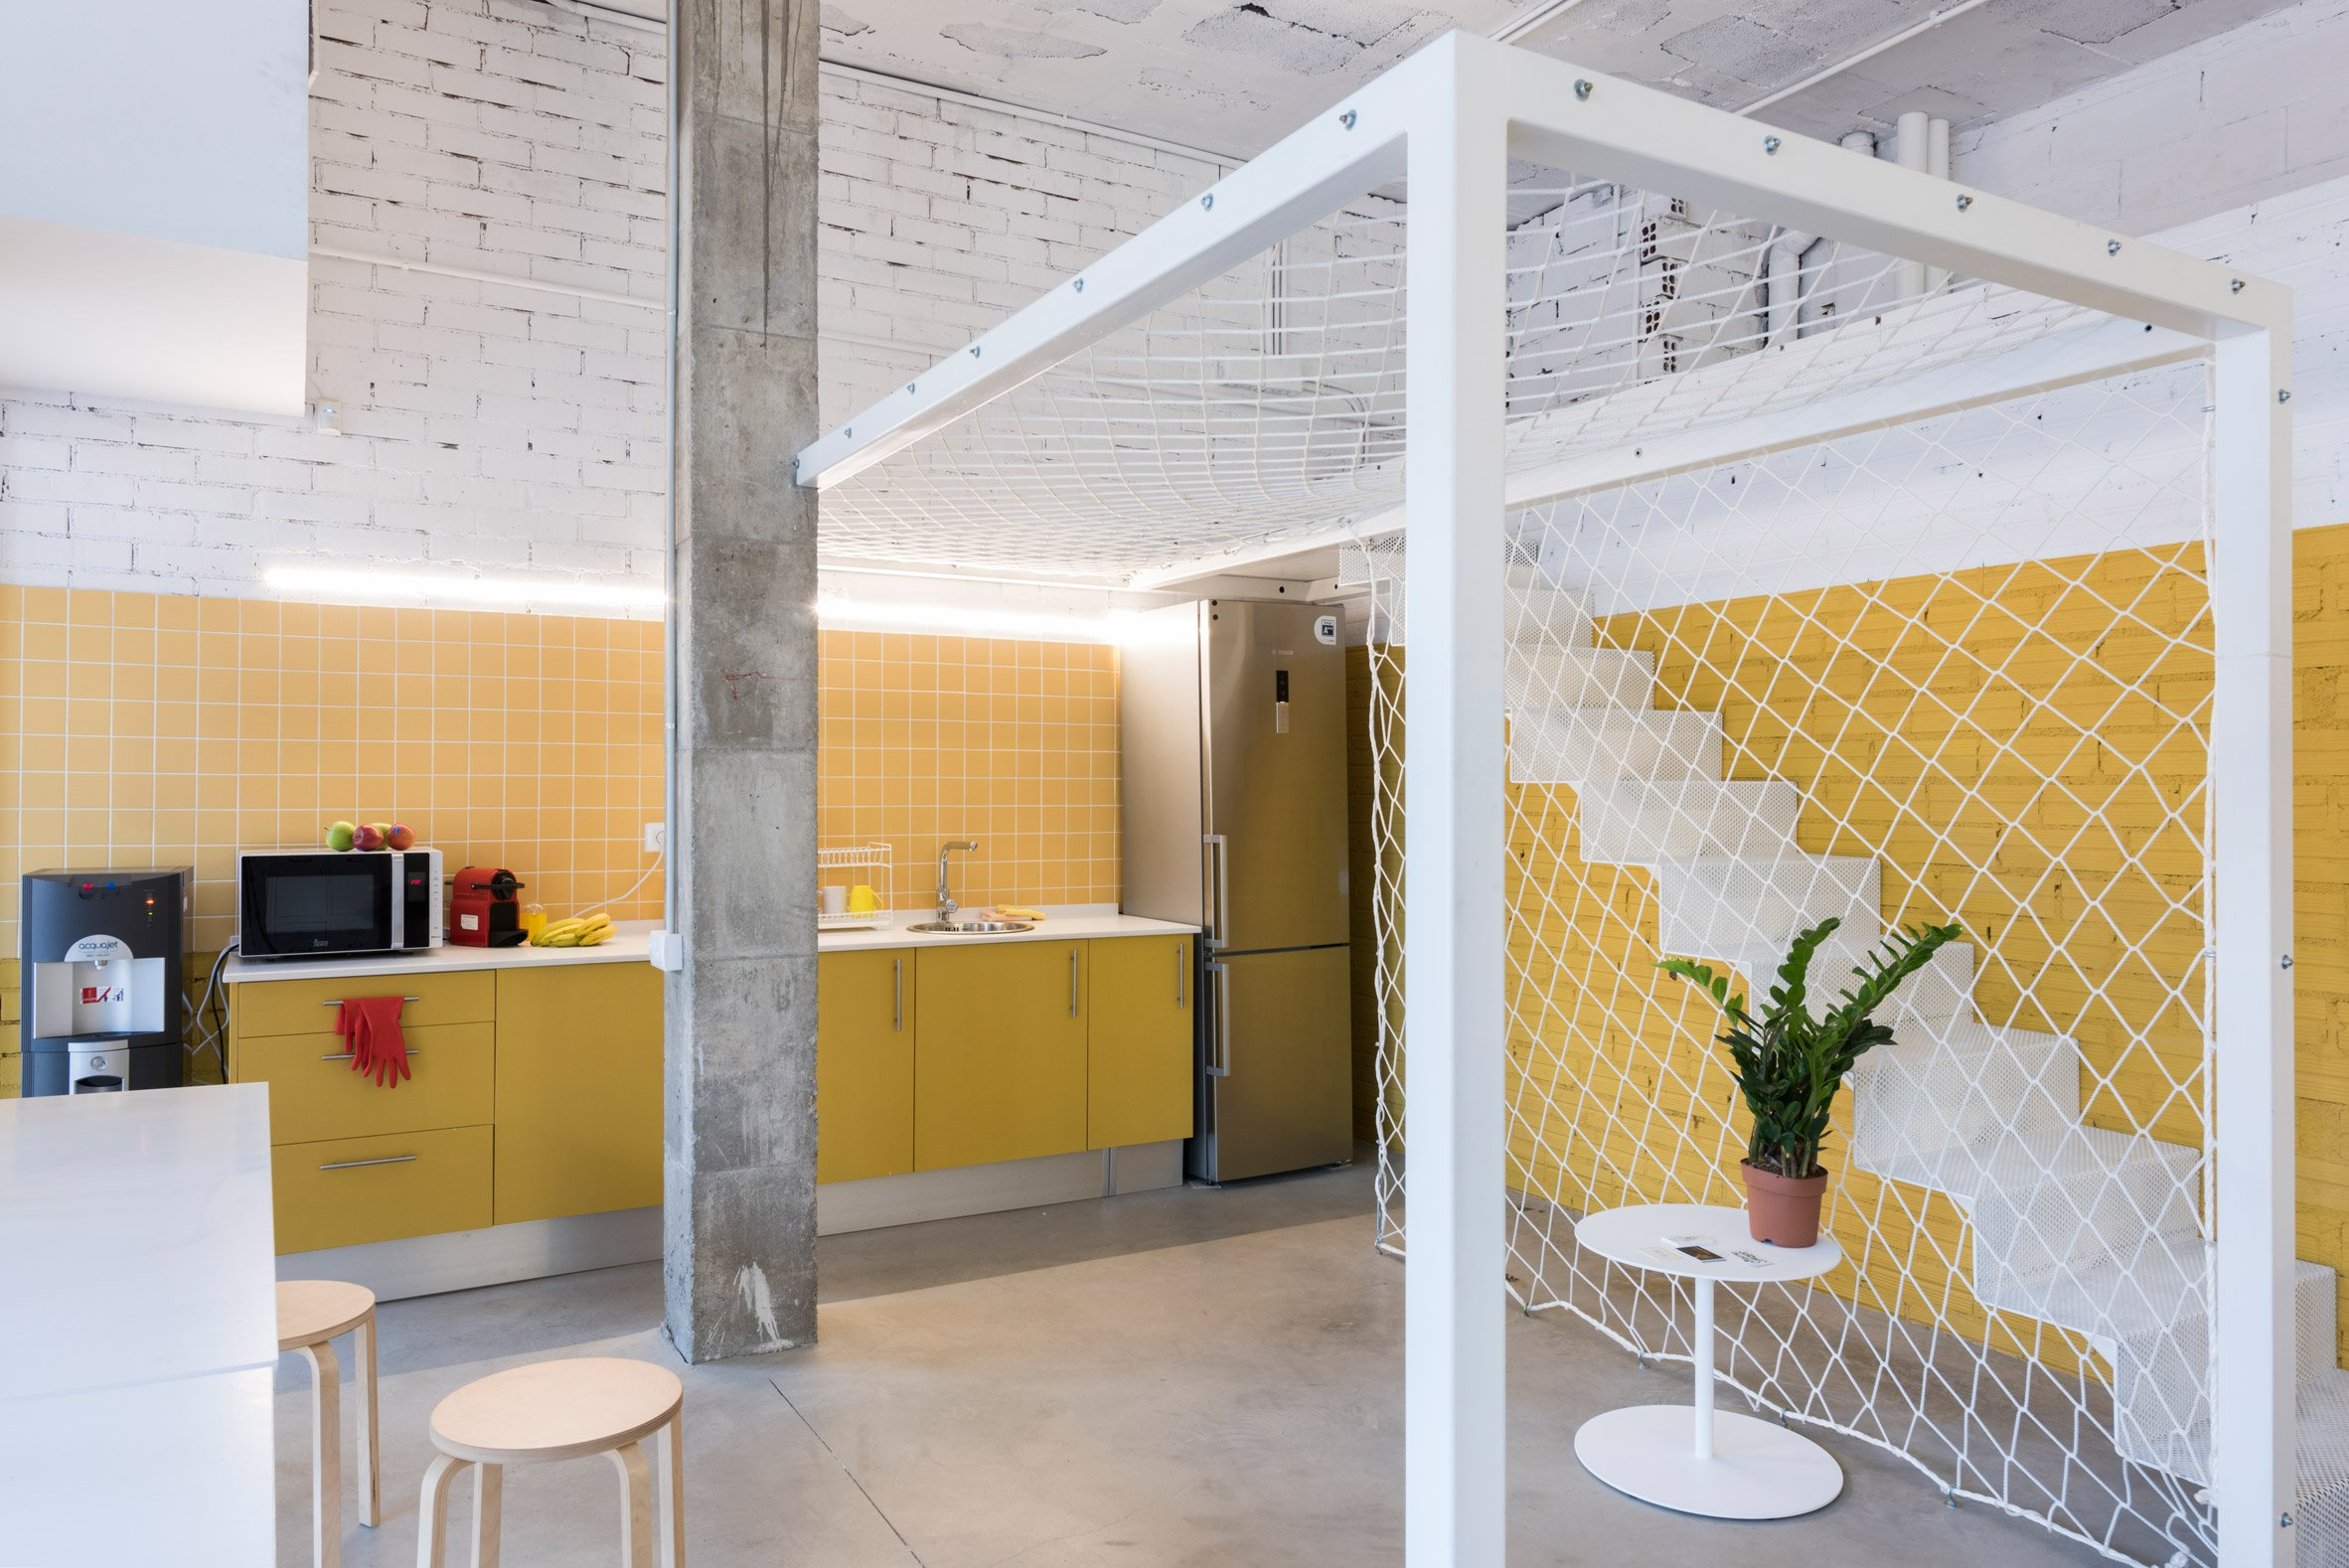 Sinèrgics co-working spaces in Barcelona showcase low-budget furniture solutions